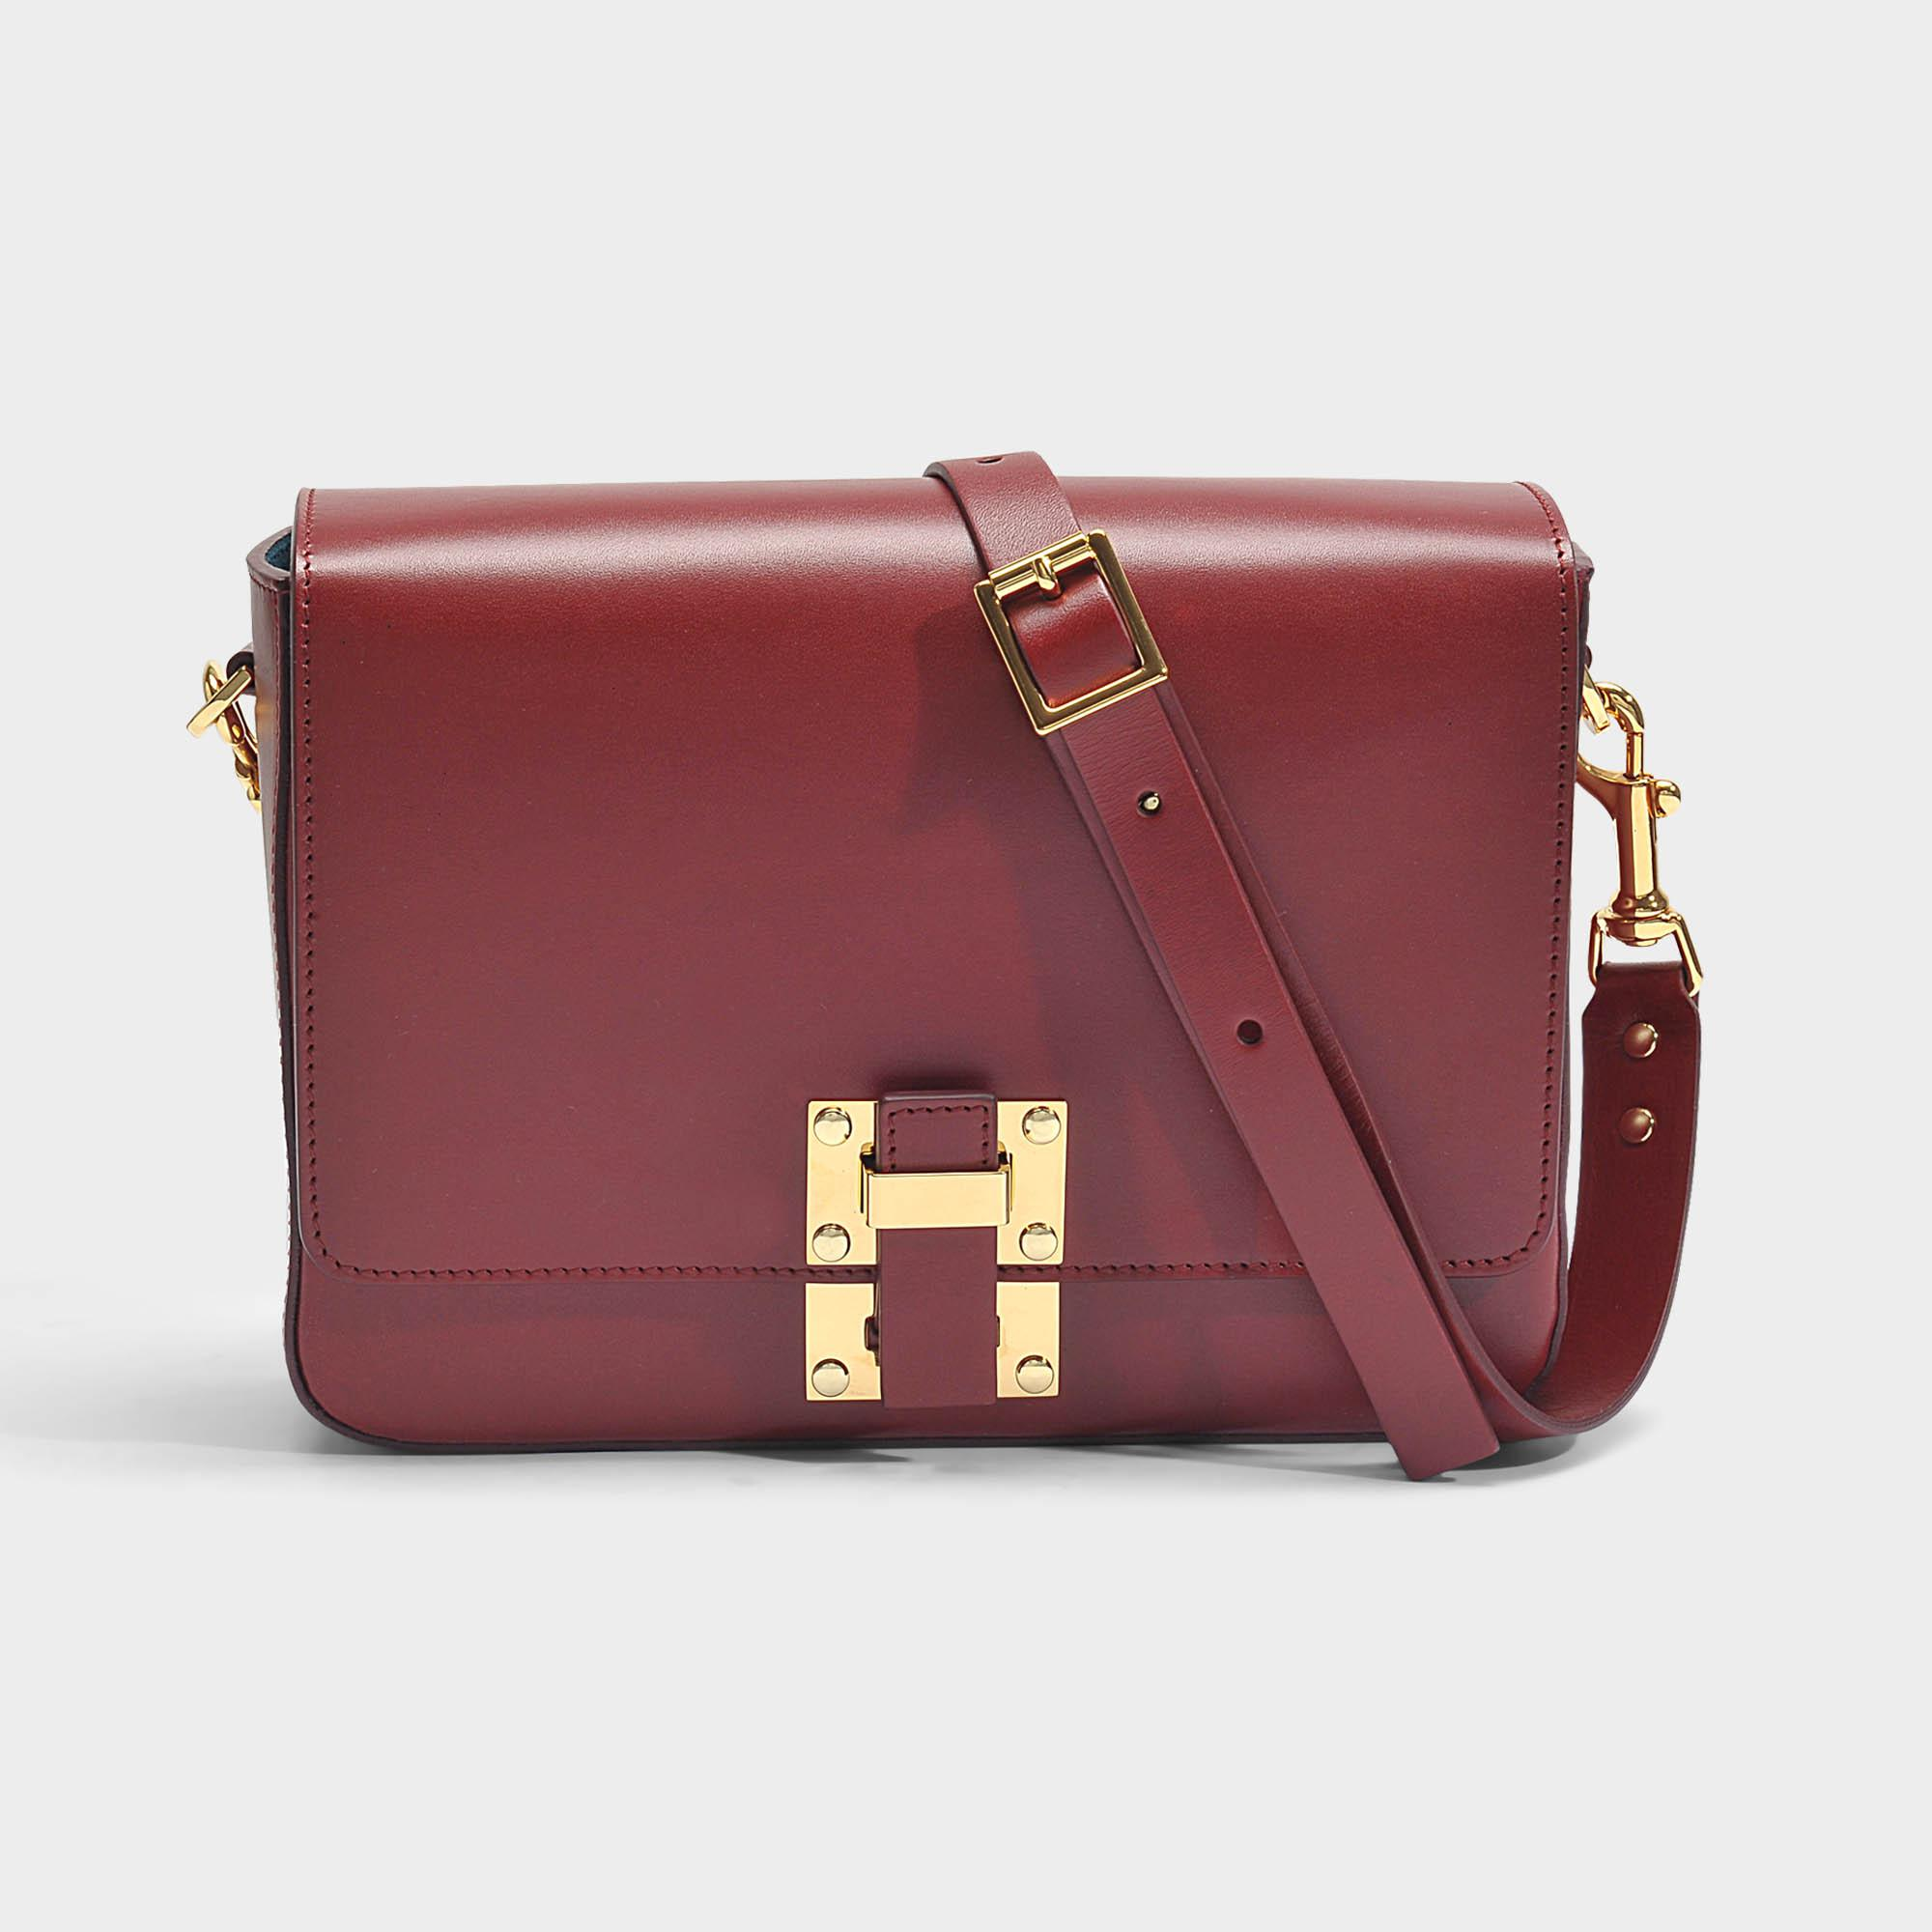 The Quick Large Bag in Fire Brick Cow Leather Sophie Hulme ZxX5sisyS